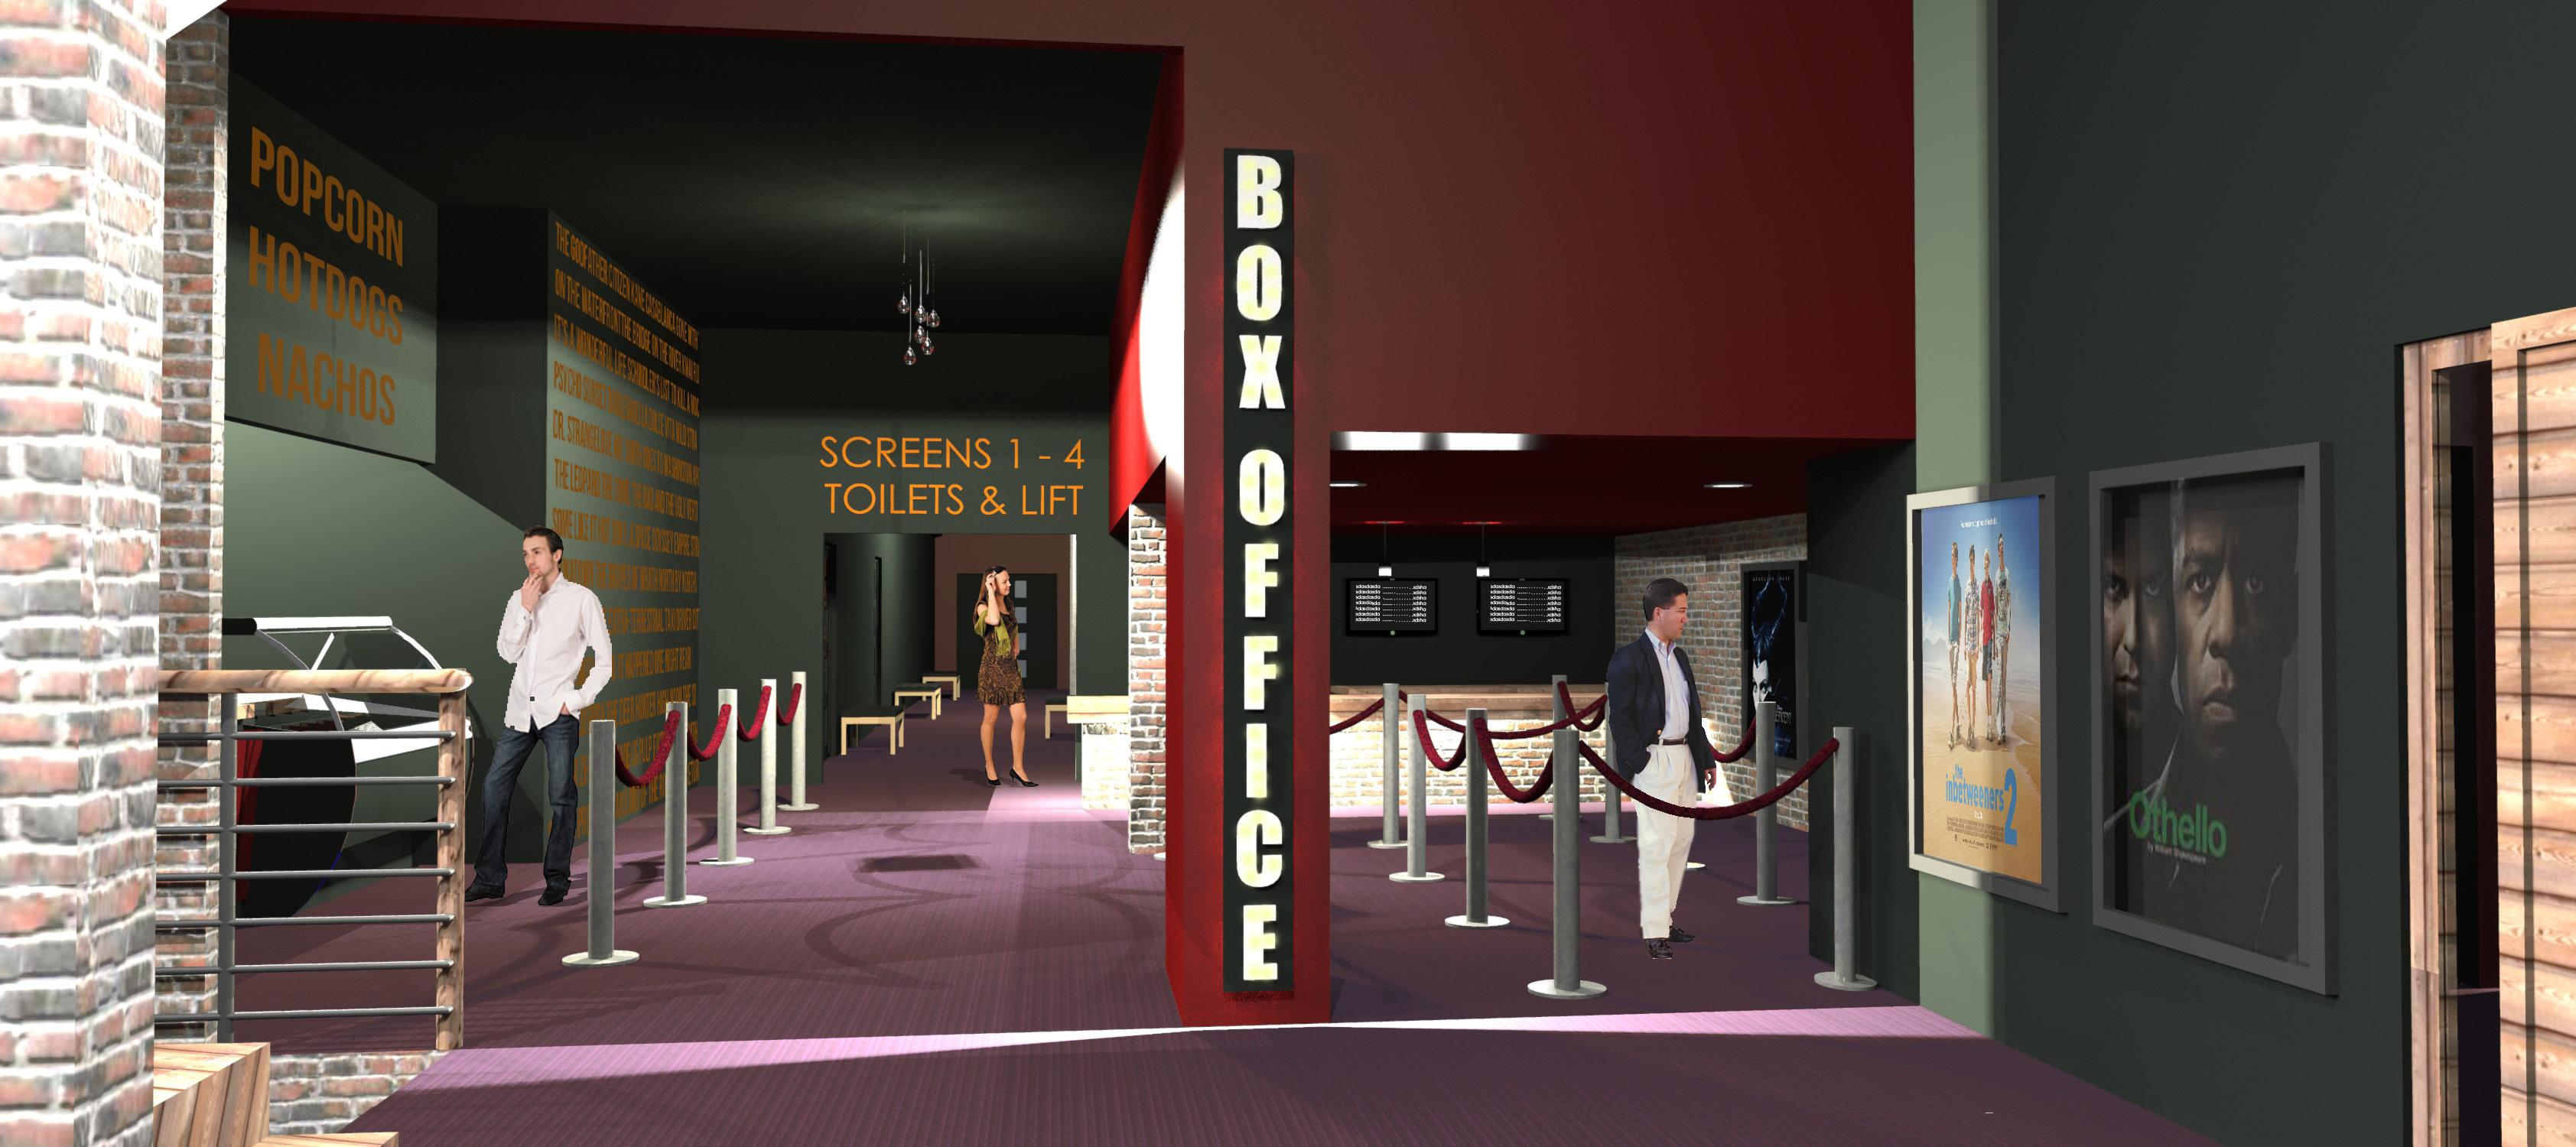 design: An artist's impression of the planned new cinema.